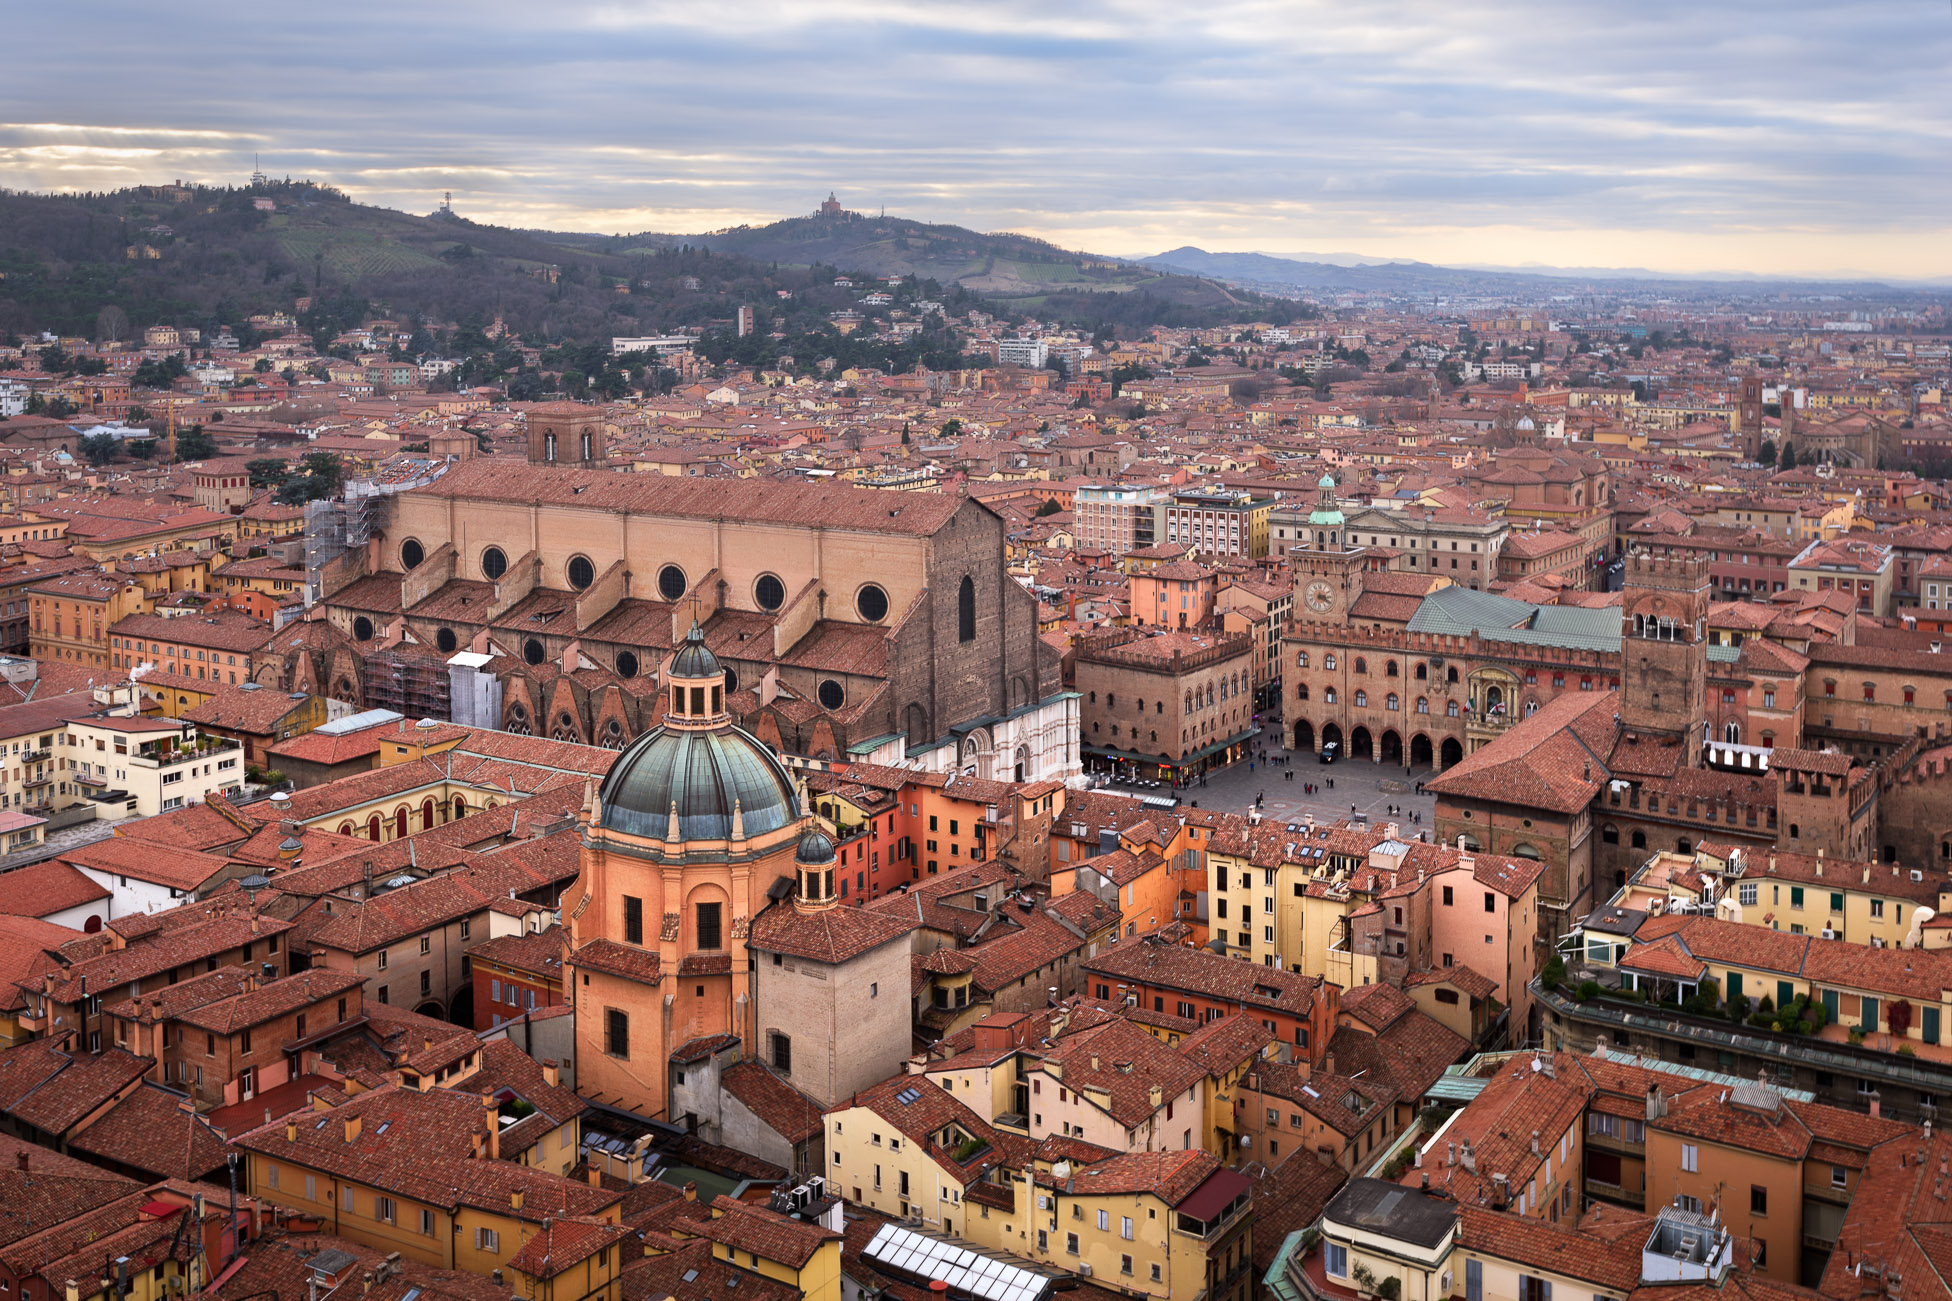 Aerial View of Bologna from Asinelli Tower, Bologna, Emilia-Romagna, Italy